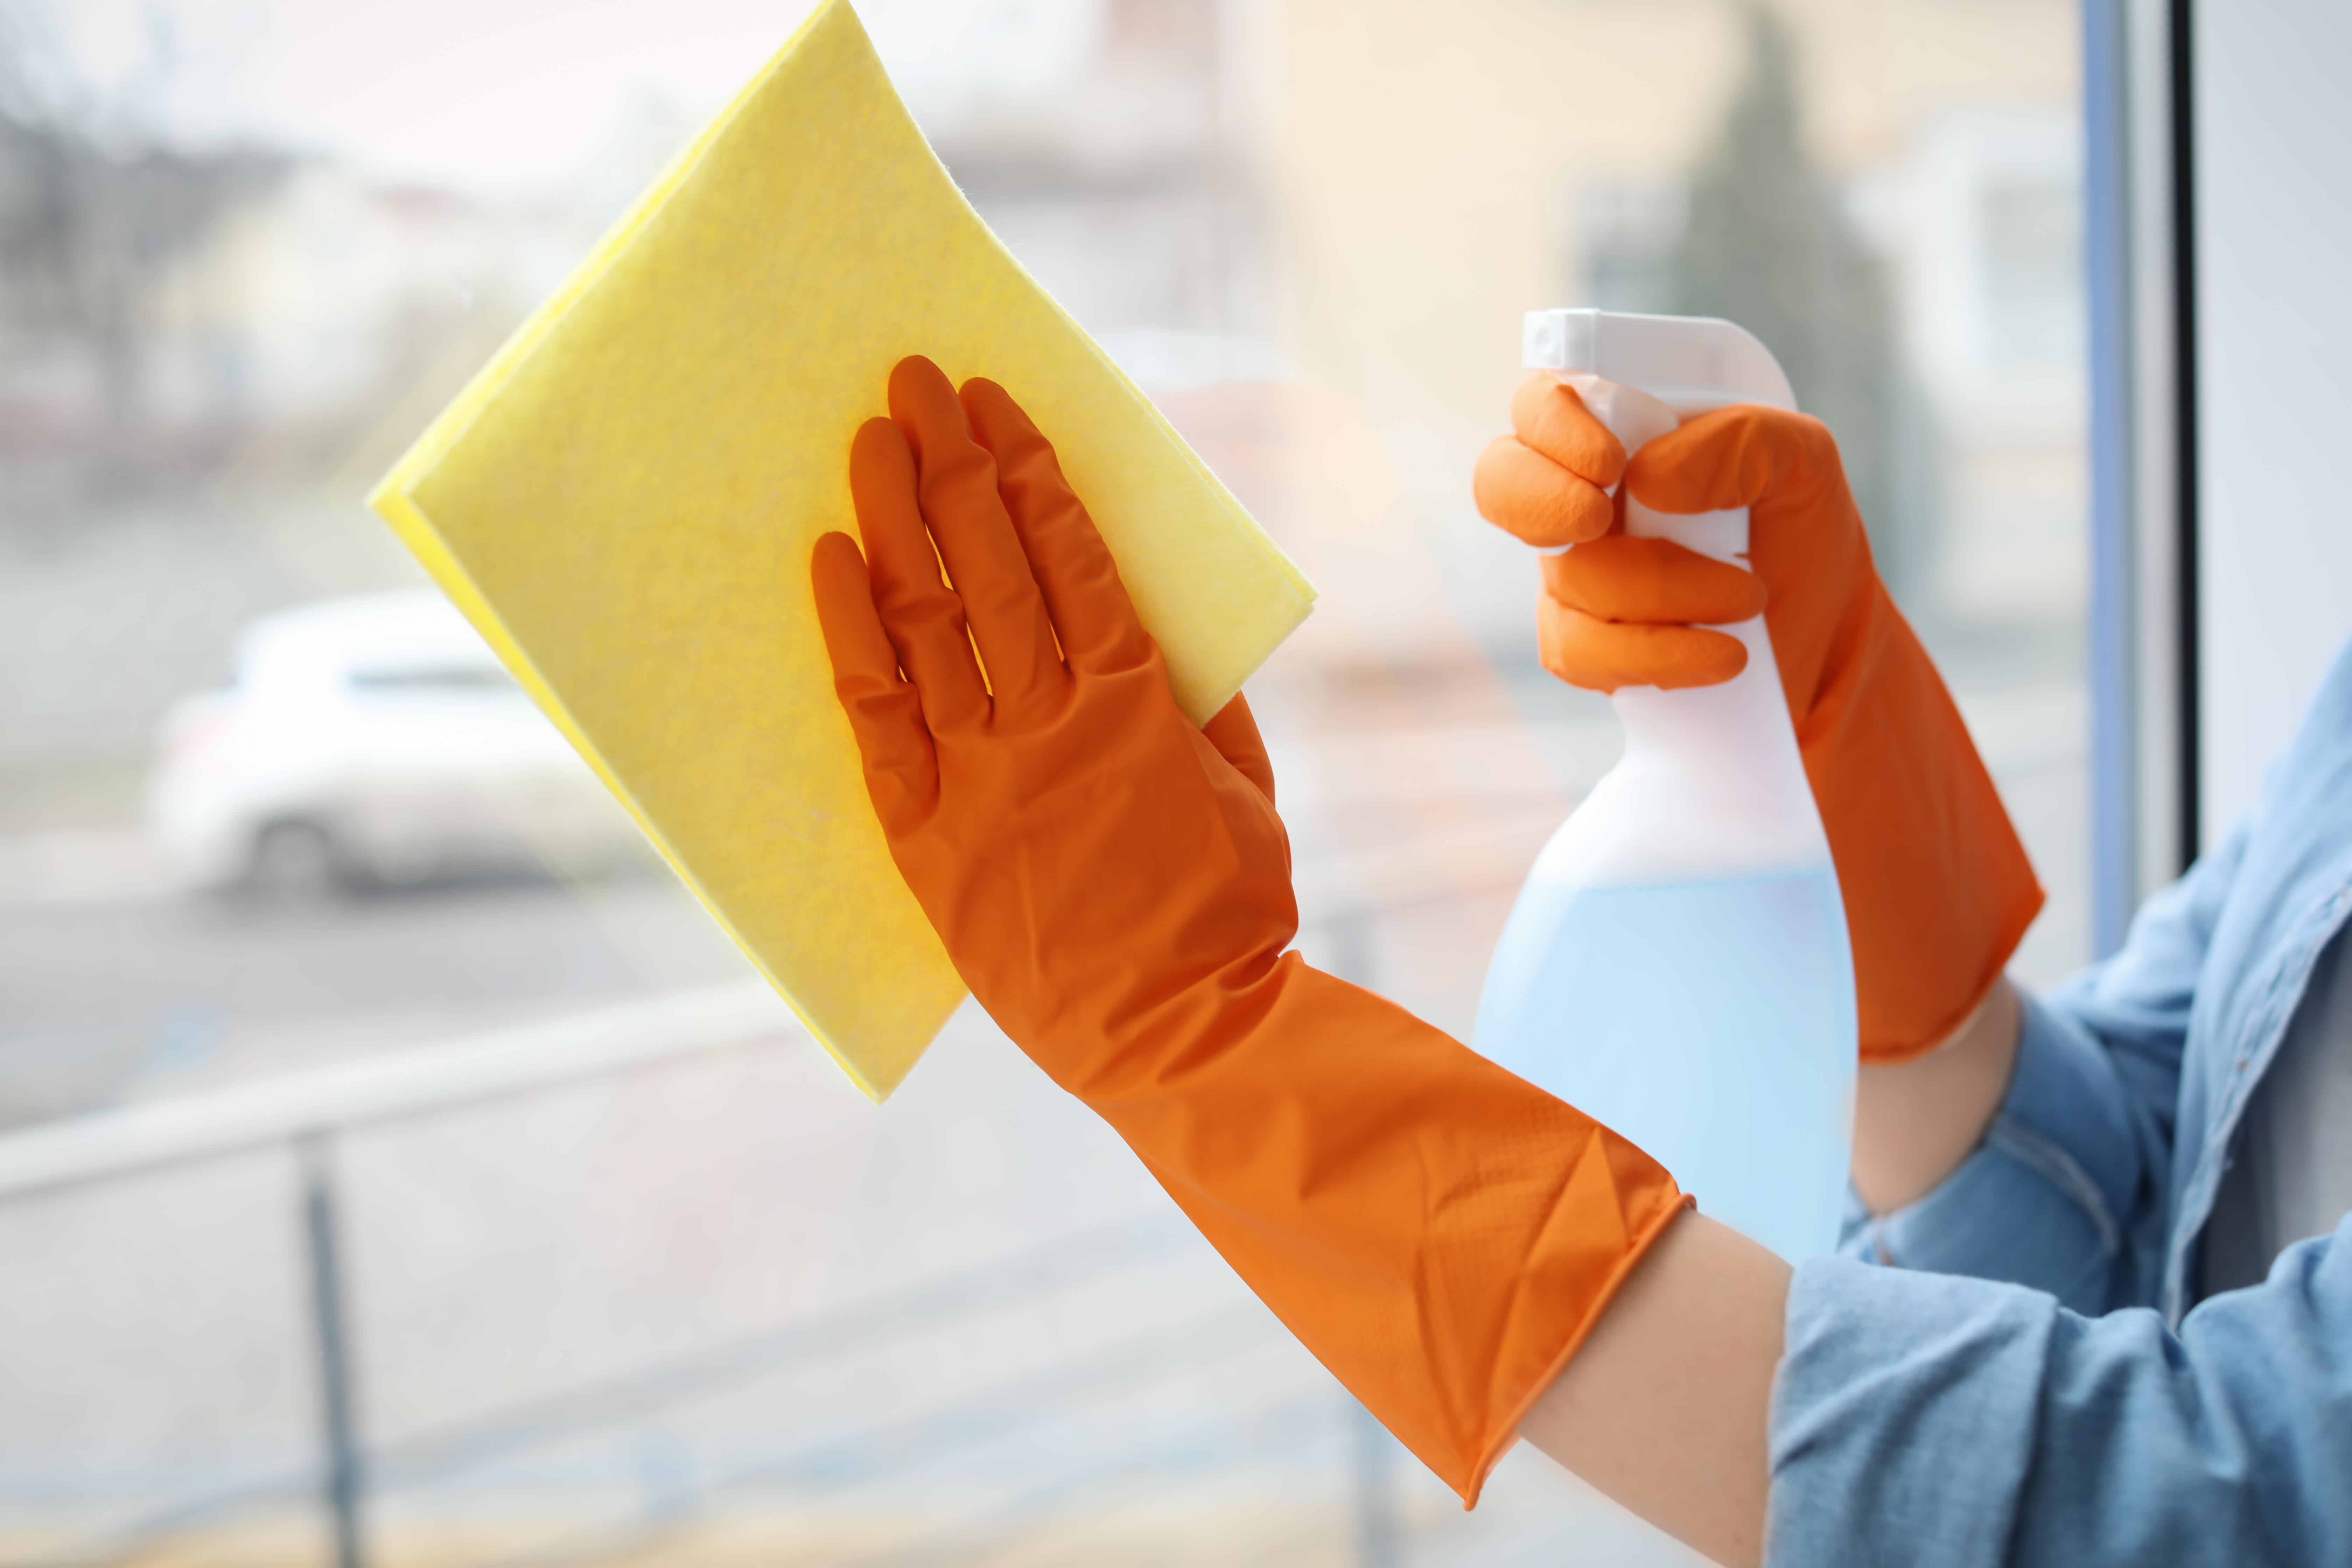 How to Get Sticky Tape Off of Windows | Home Guides | SF Gate